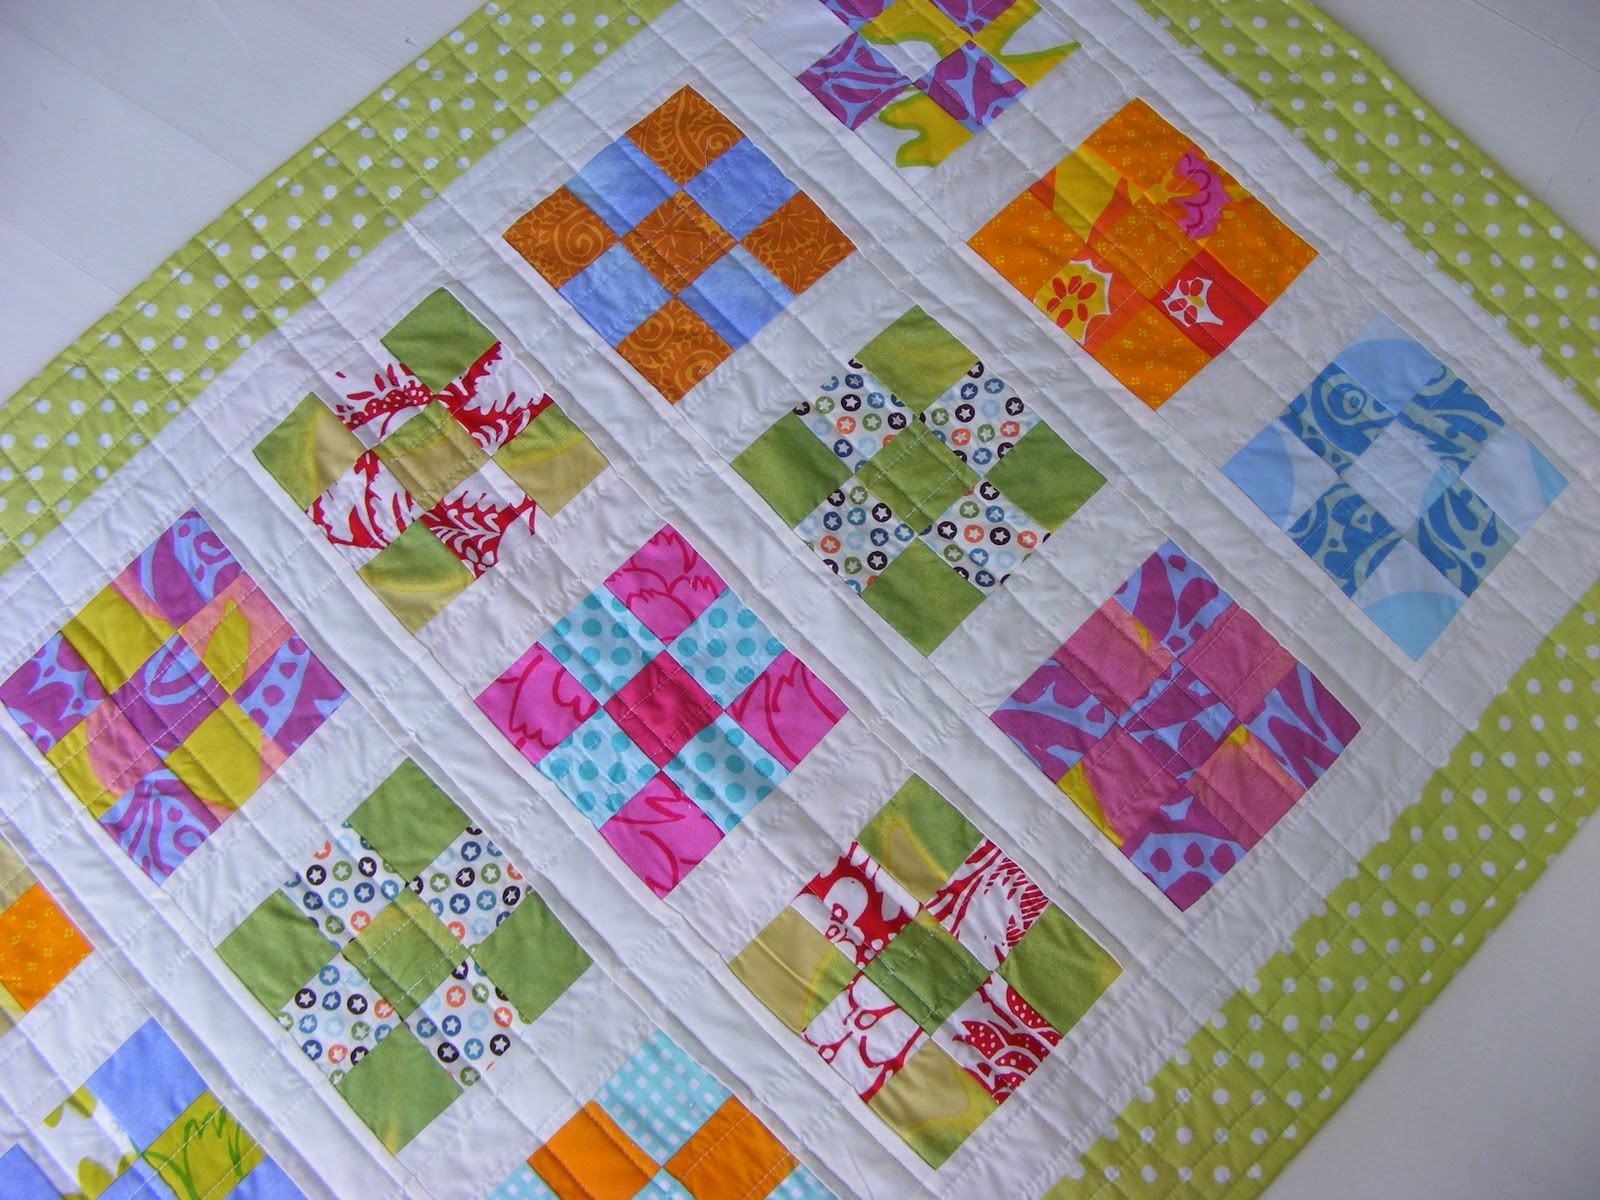 Blimunda quilts nine patch baby quilt number three